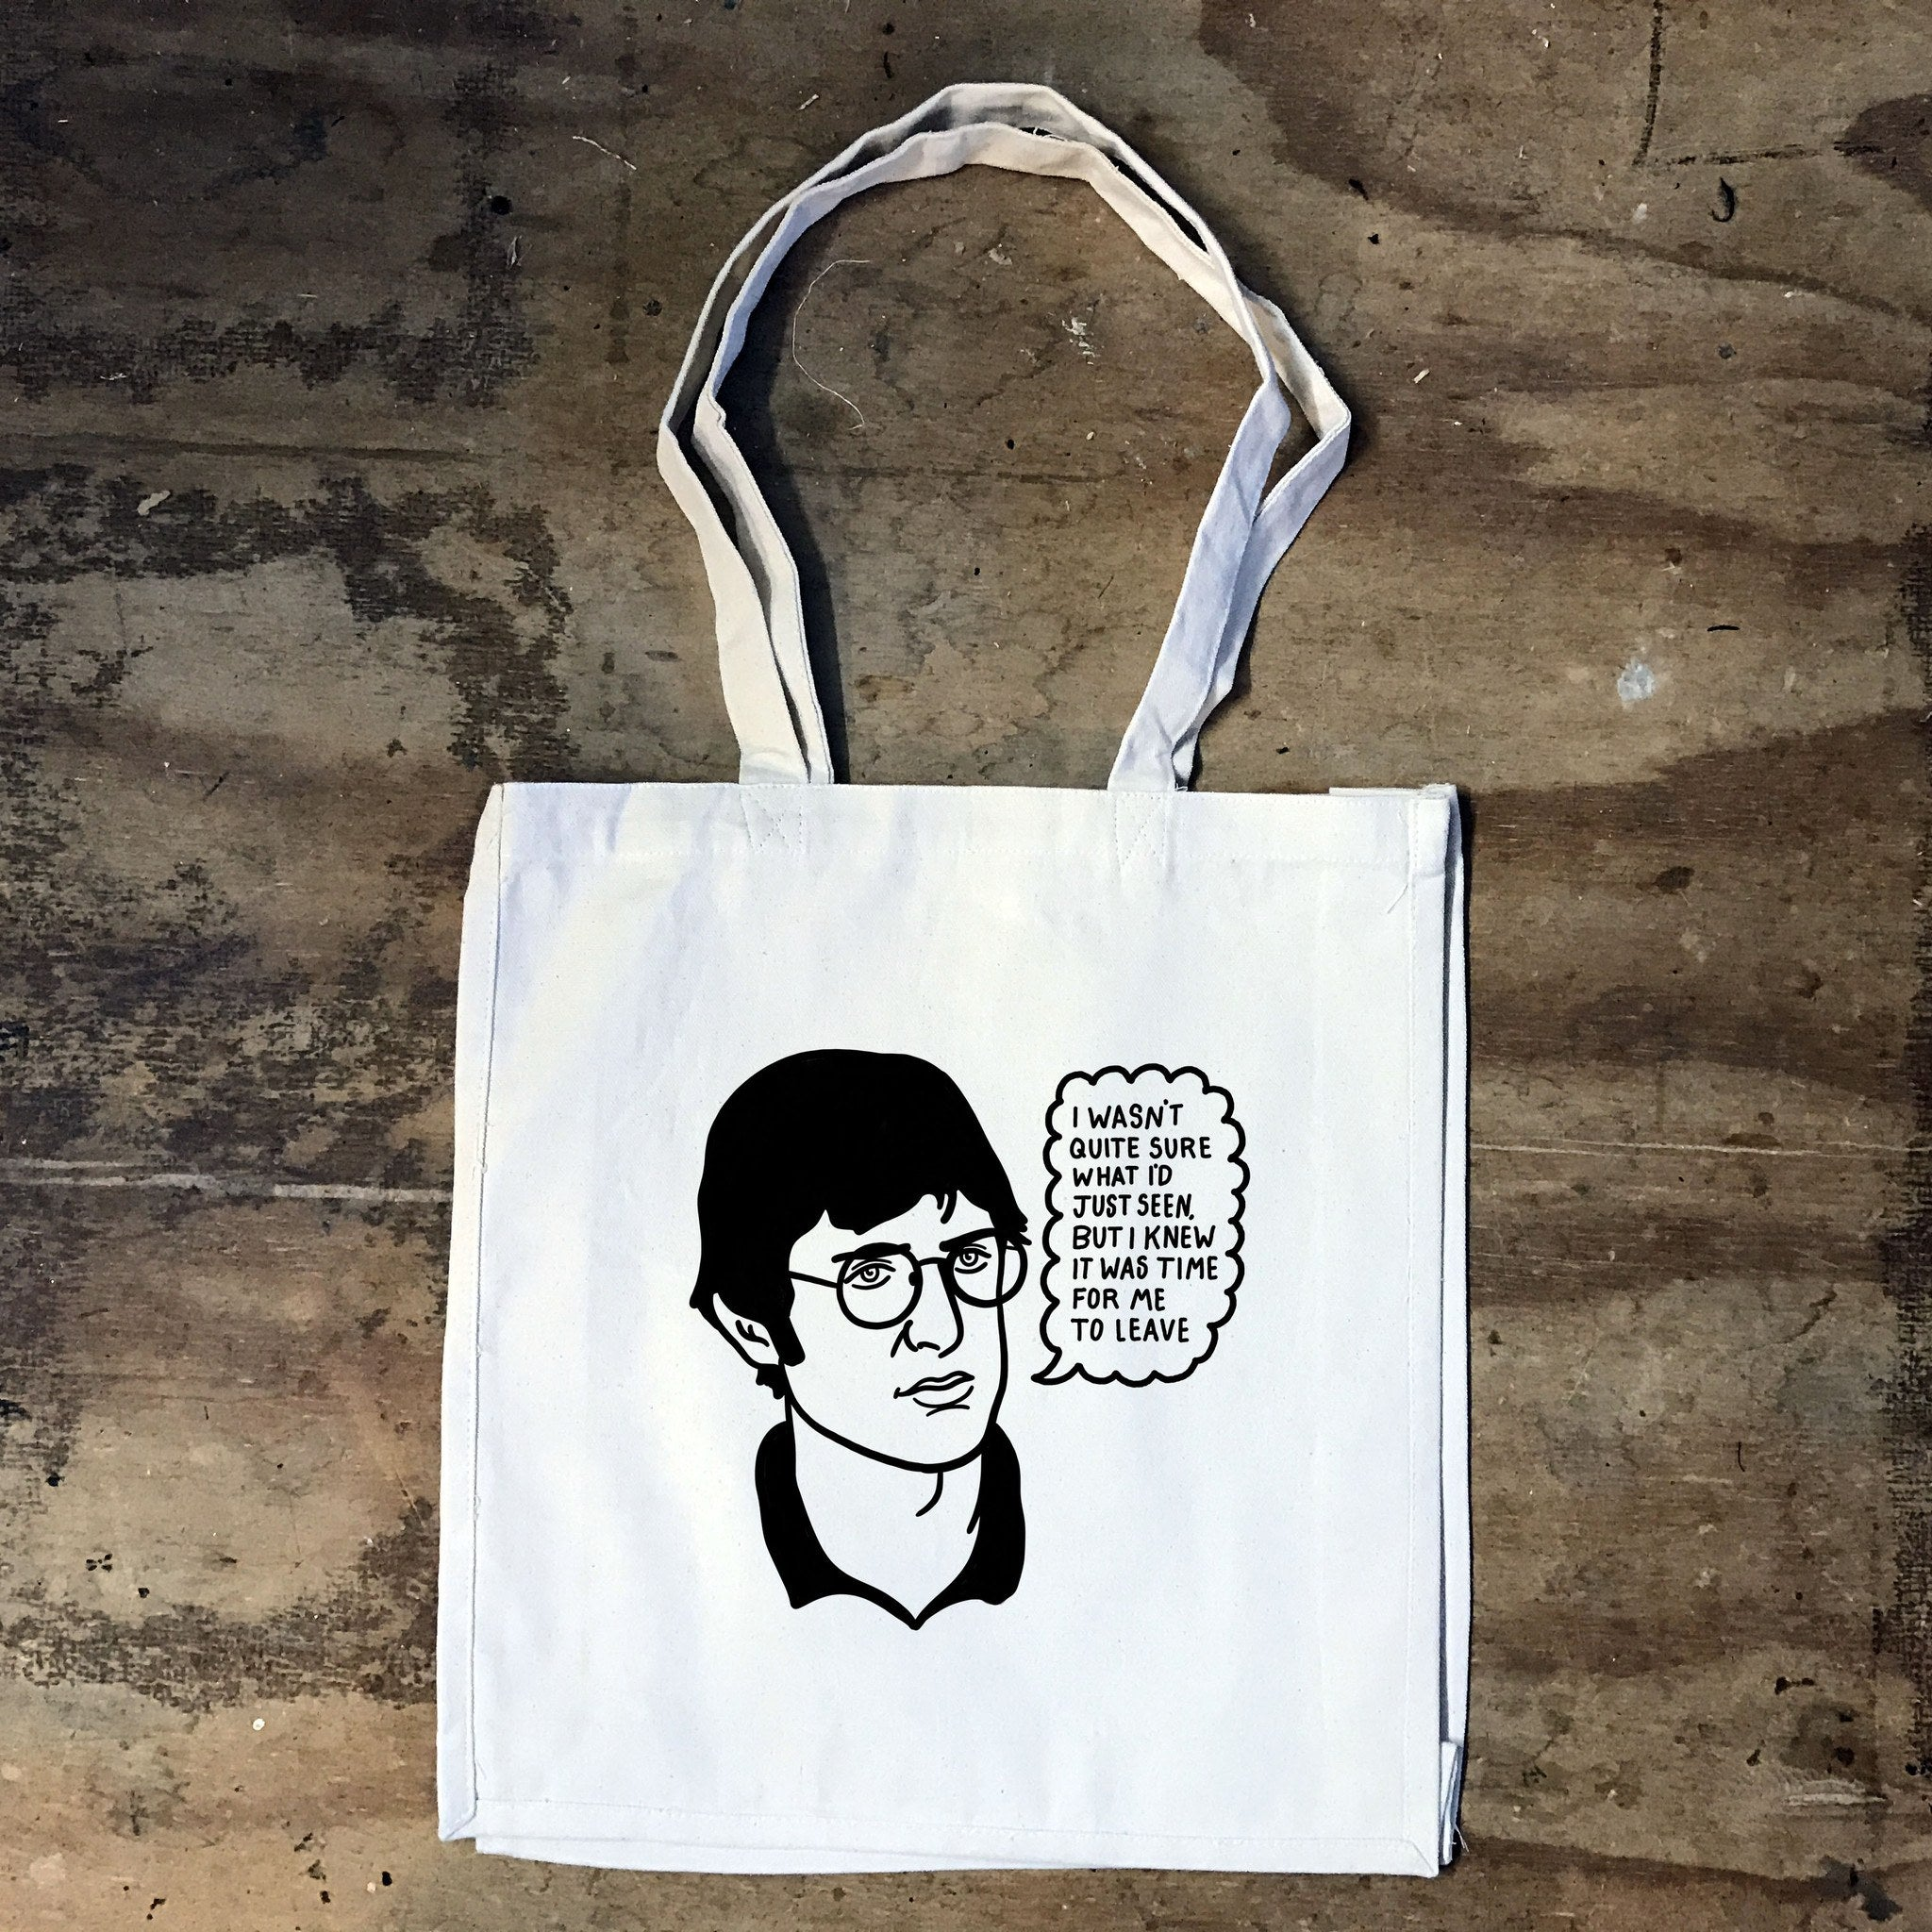 Louis Theroux - I wasn't Quite Sure what I'd Just Seen - Tote Bag - Jiggle Apparel